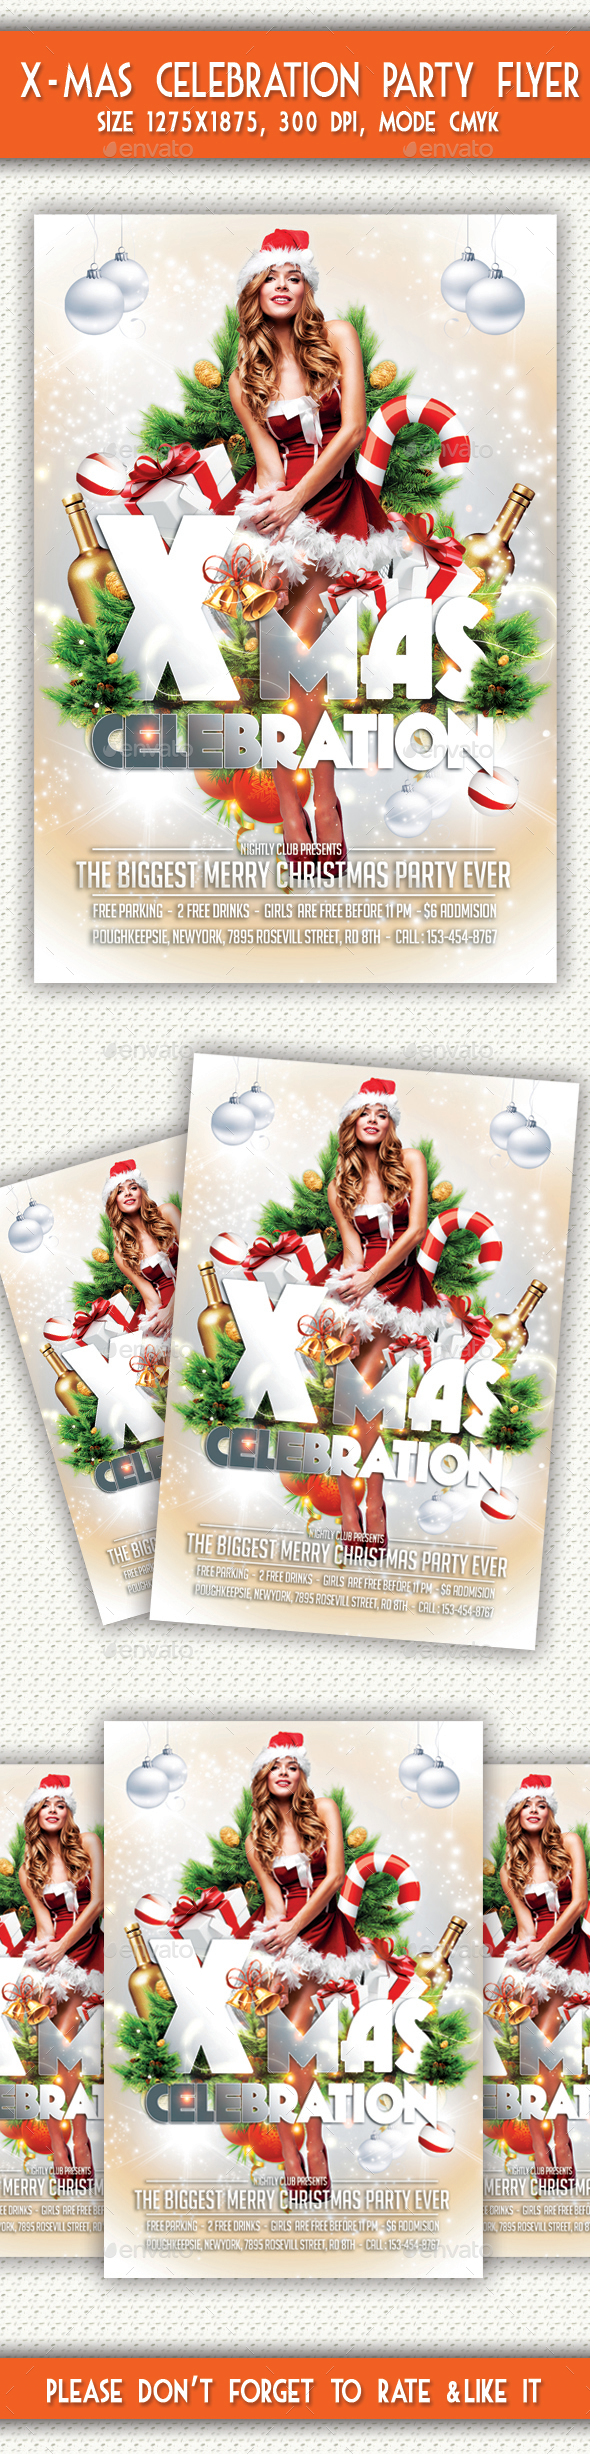 X-mas Celebration Party Flyer - Holidays Events